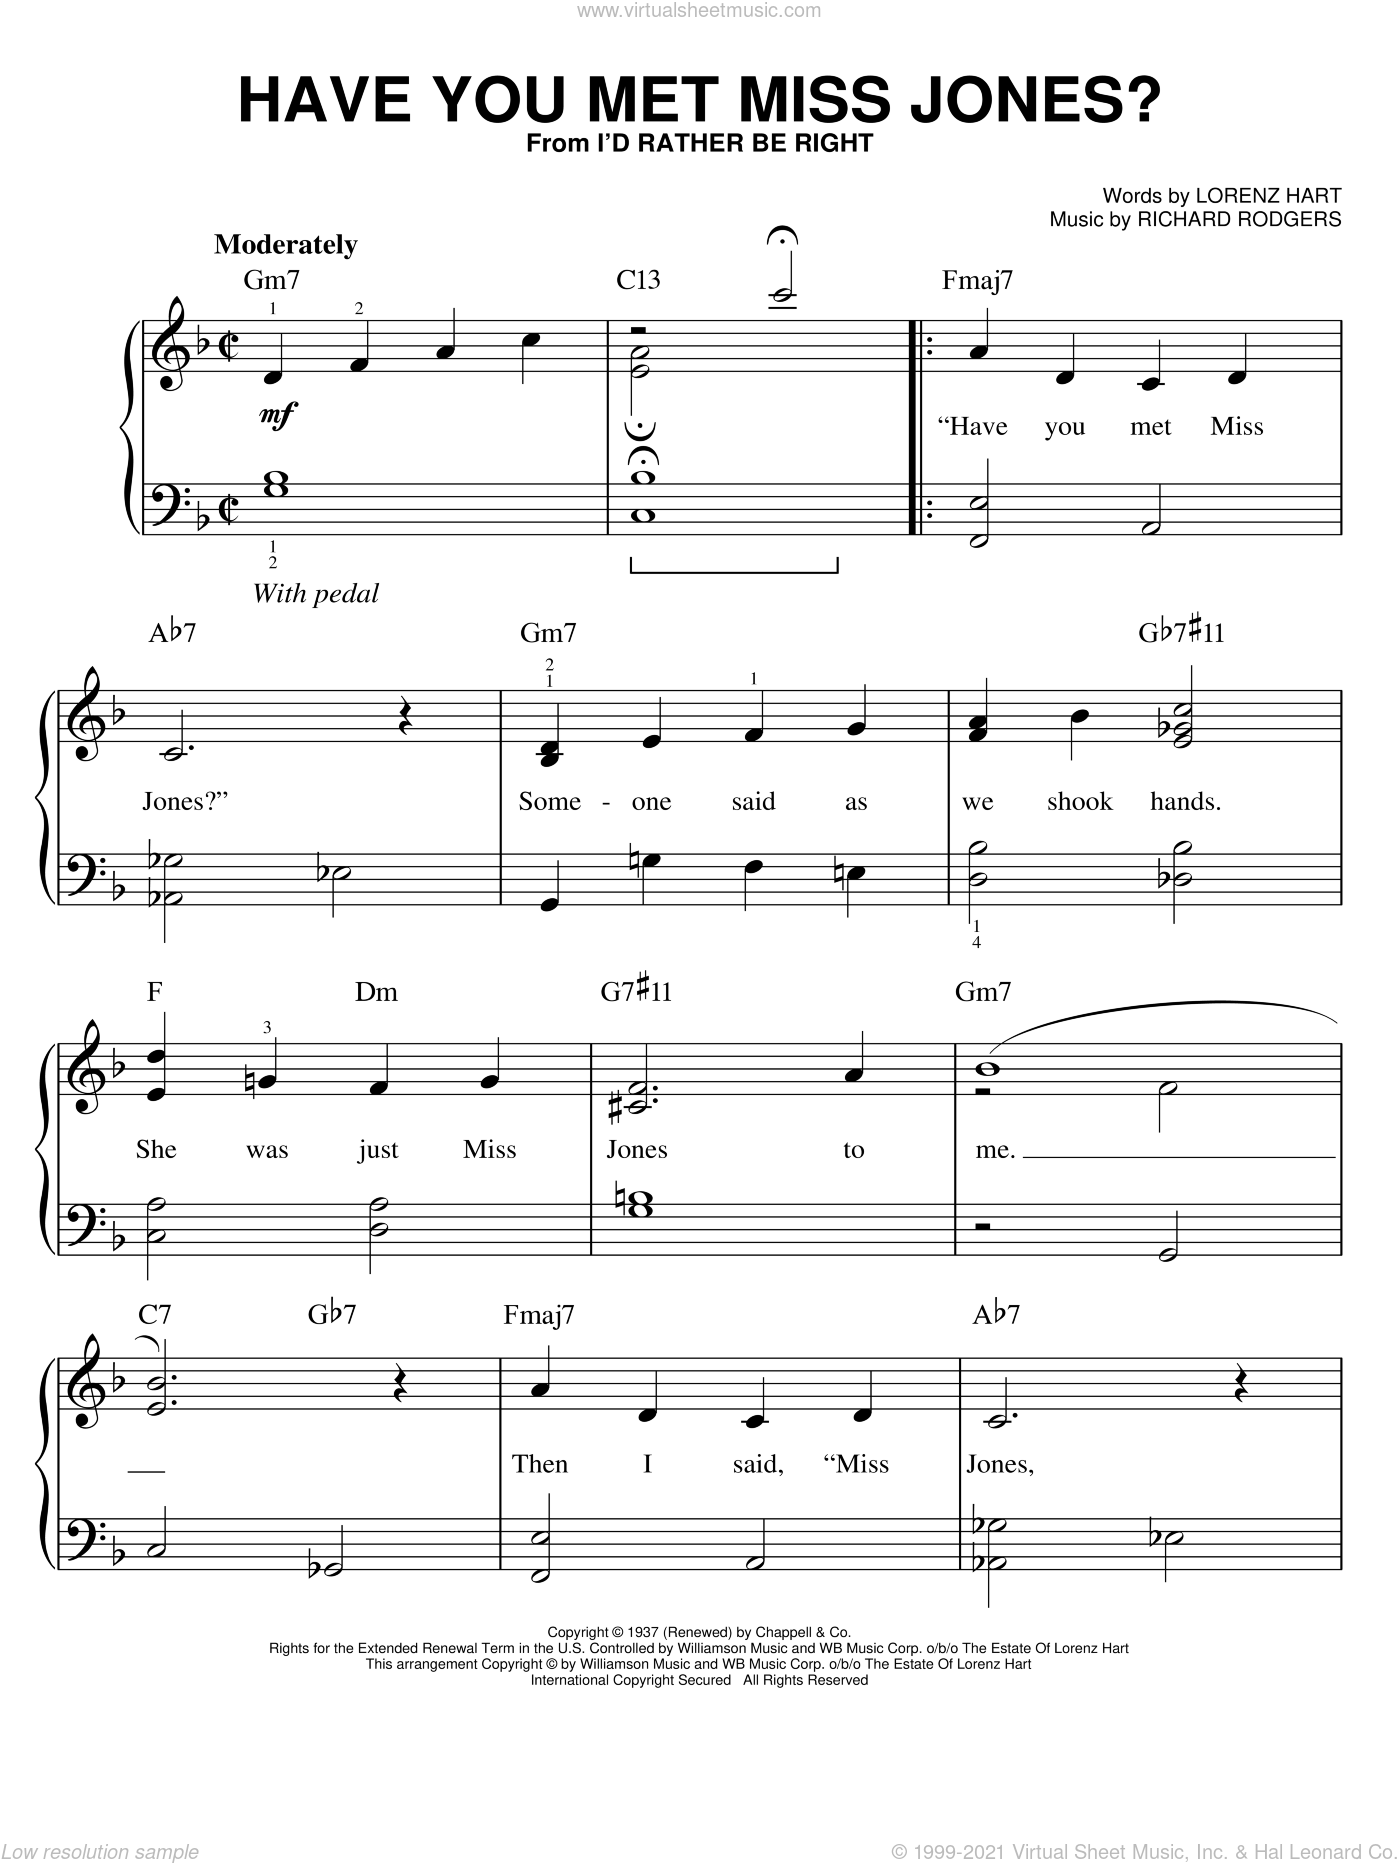 Have You Met Miss Jones?, (easy) sheet music for piano solo by Rodgers & Hart, Lorenz Hart and Richard Rodgers, easy